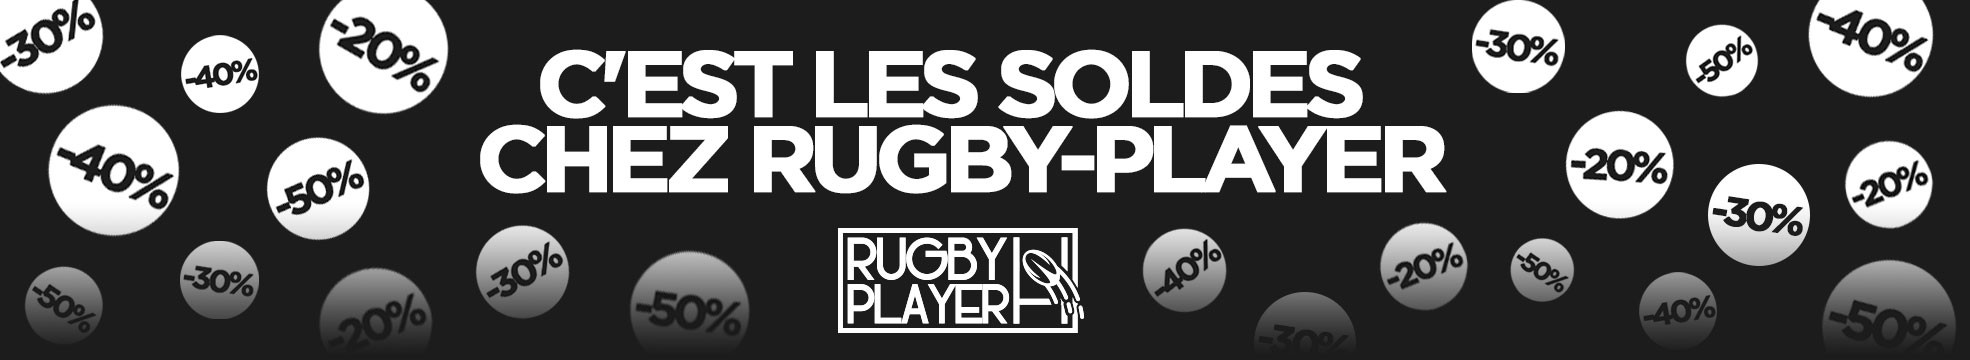 soldes articles rugby noel